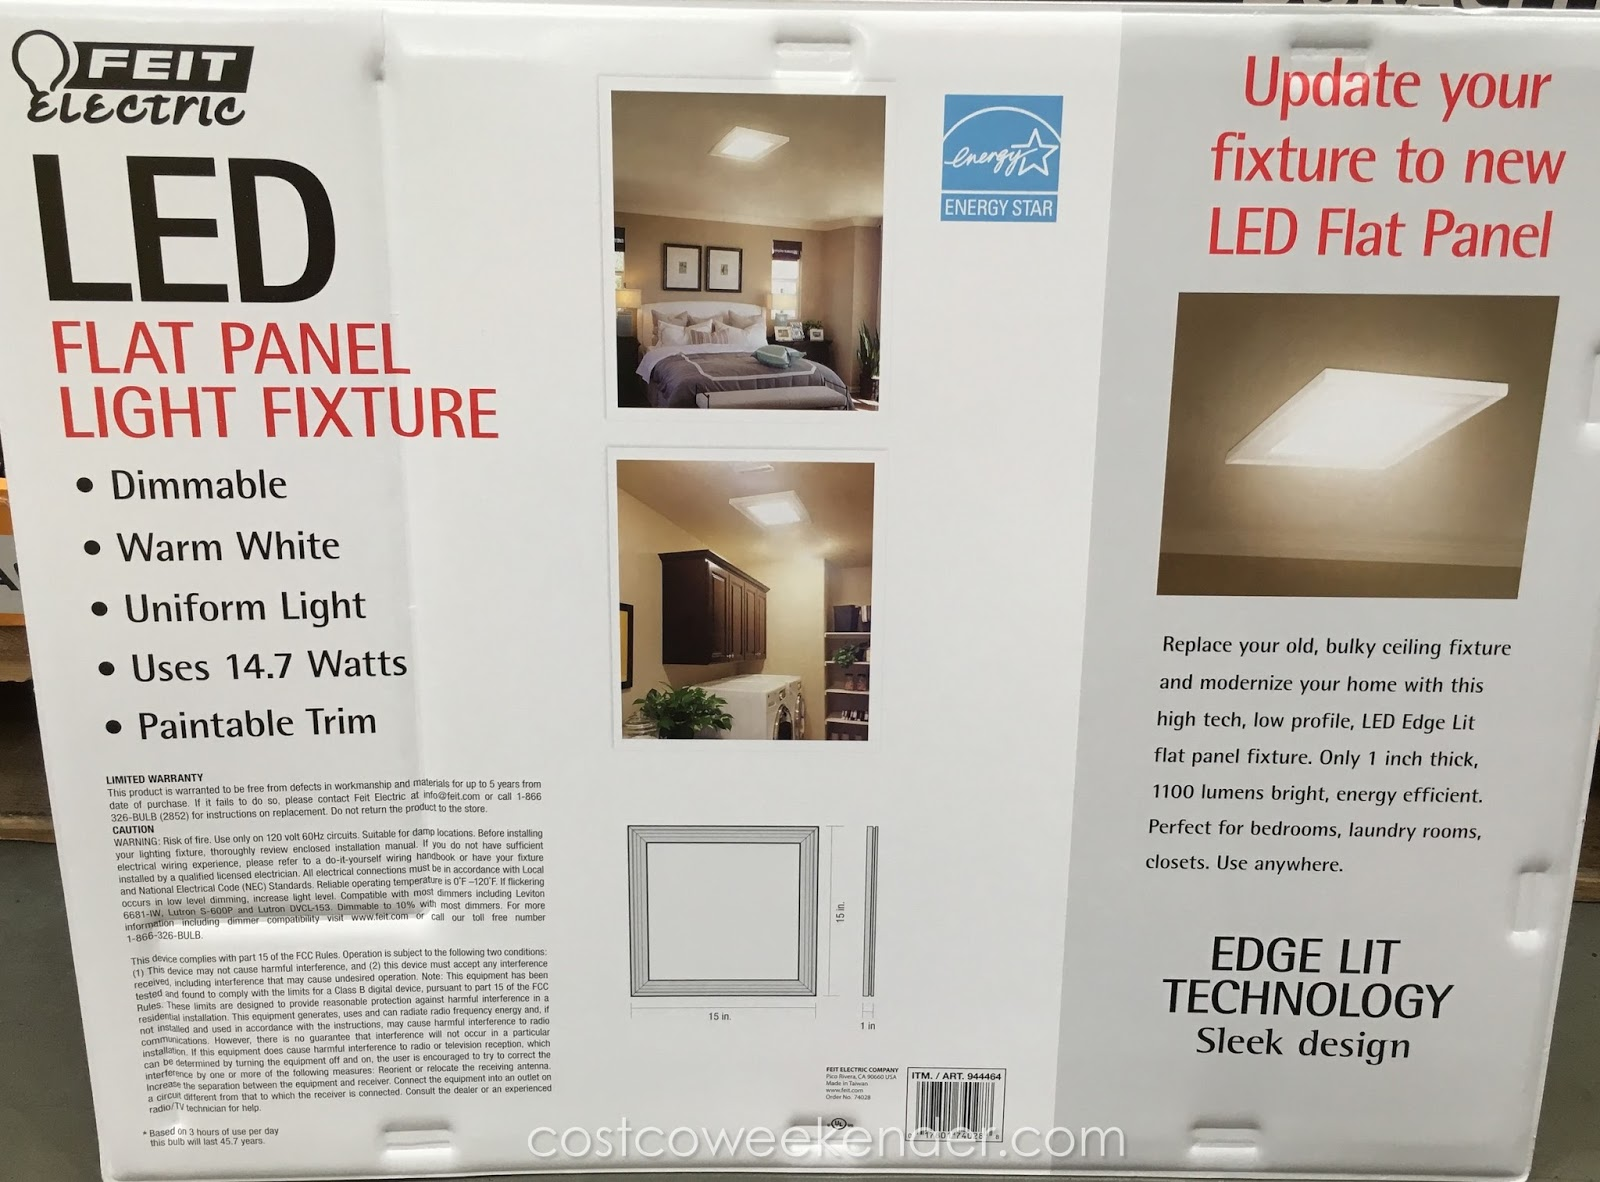 Led Ceiling Light: Led Ceiling Light Fixture Costco